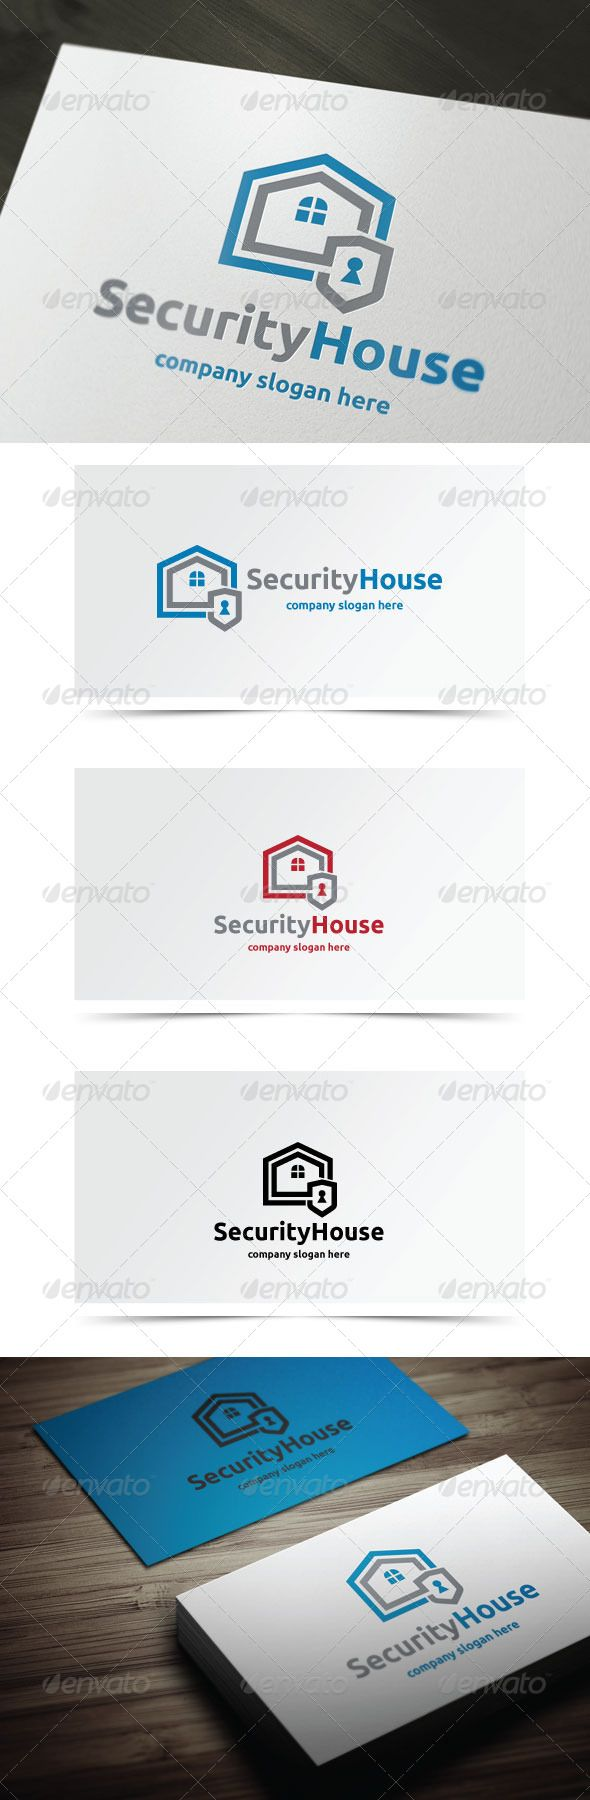 Security House Logo Design Template Vector #logotype Download it here: http://graphicriver.net/item/security-house/6280973?s_rank=867?ref=nexion